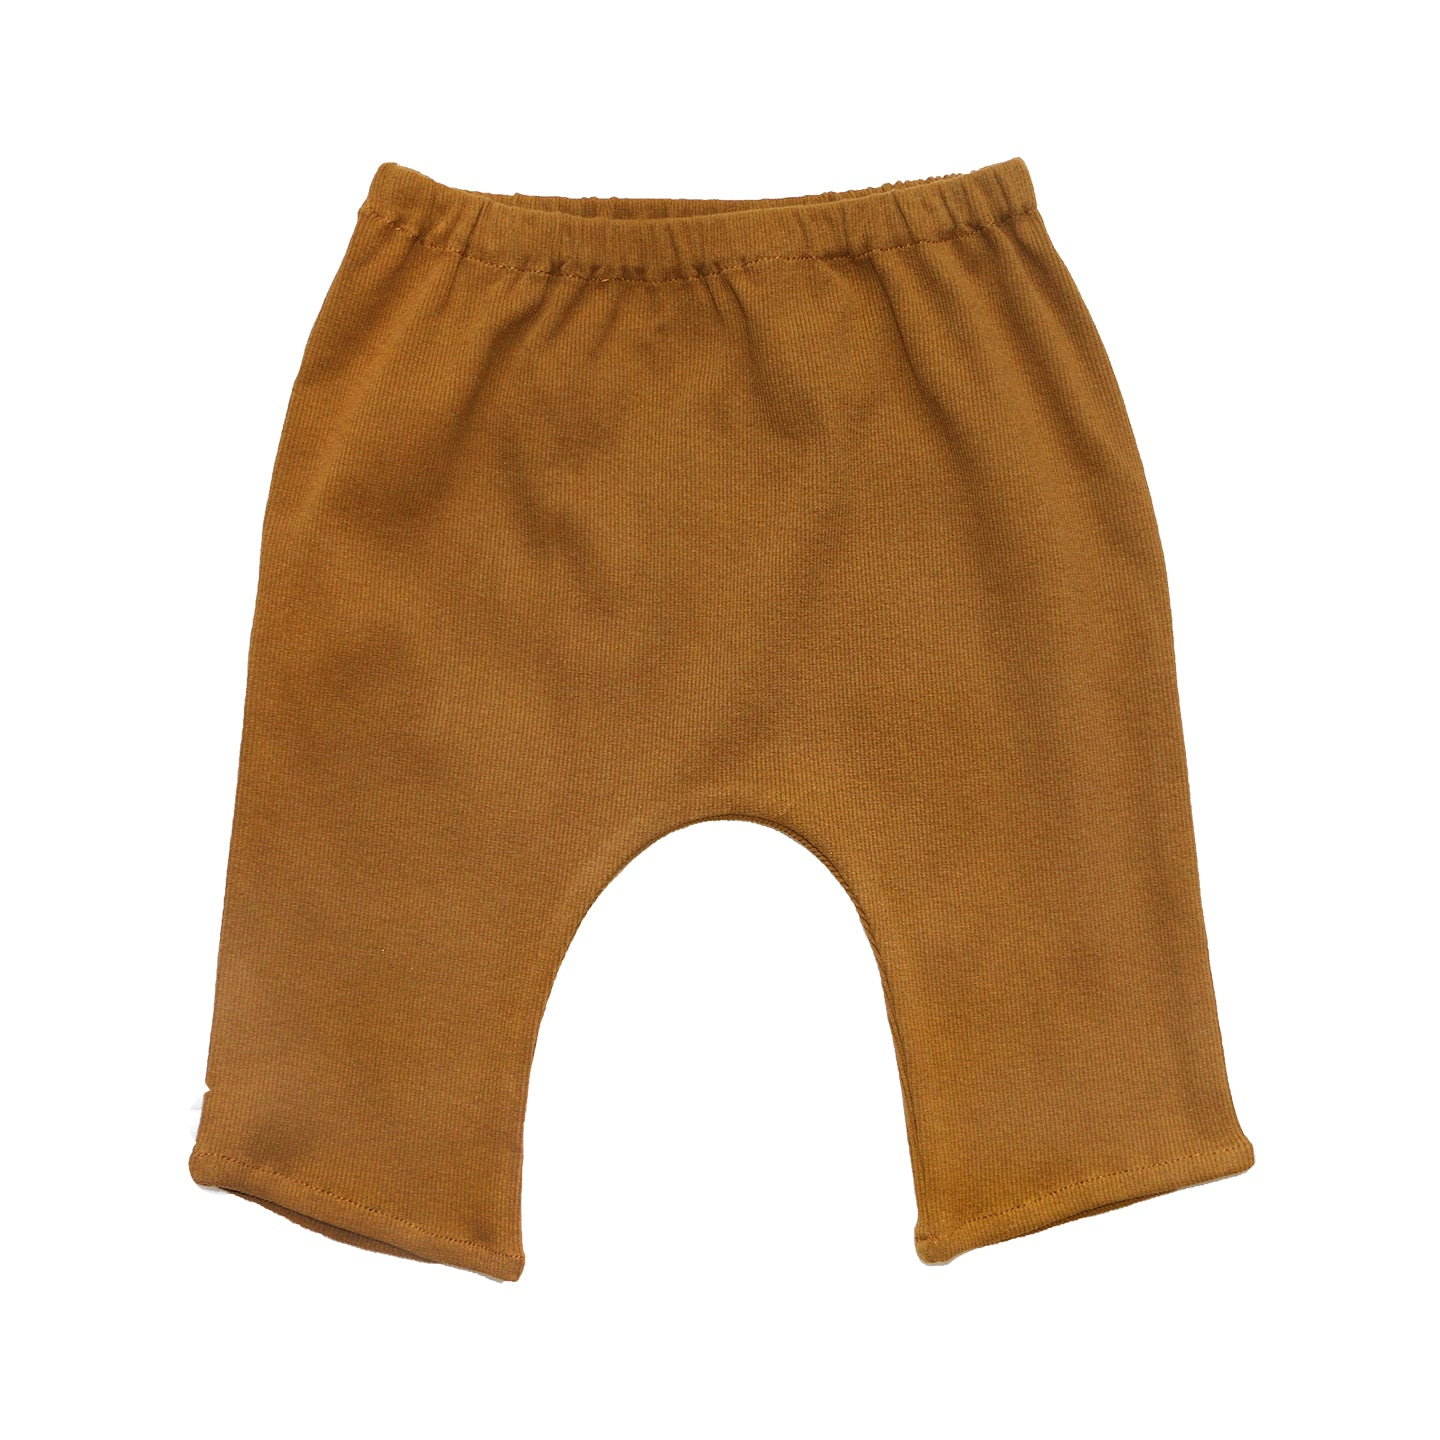 Load image into Gallery viewer, Coco Au Lait BABY MUSTARD SAROUEL TROUSERS Trousers Golden Brown